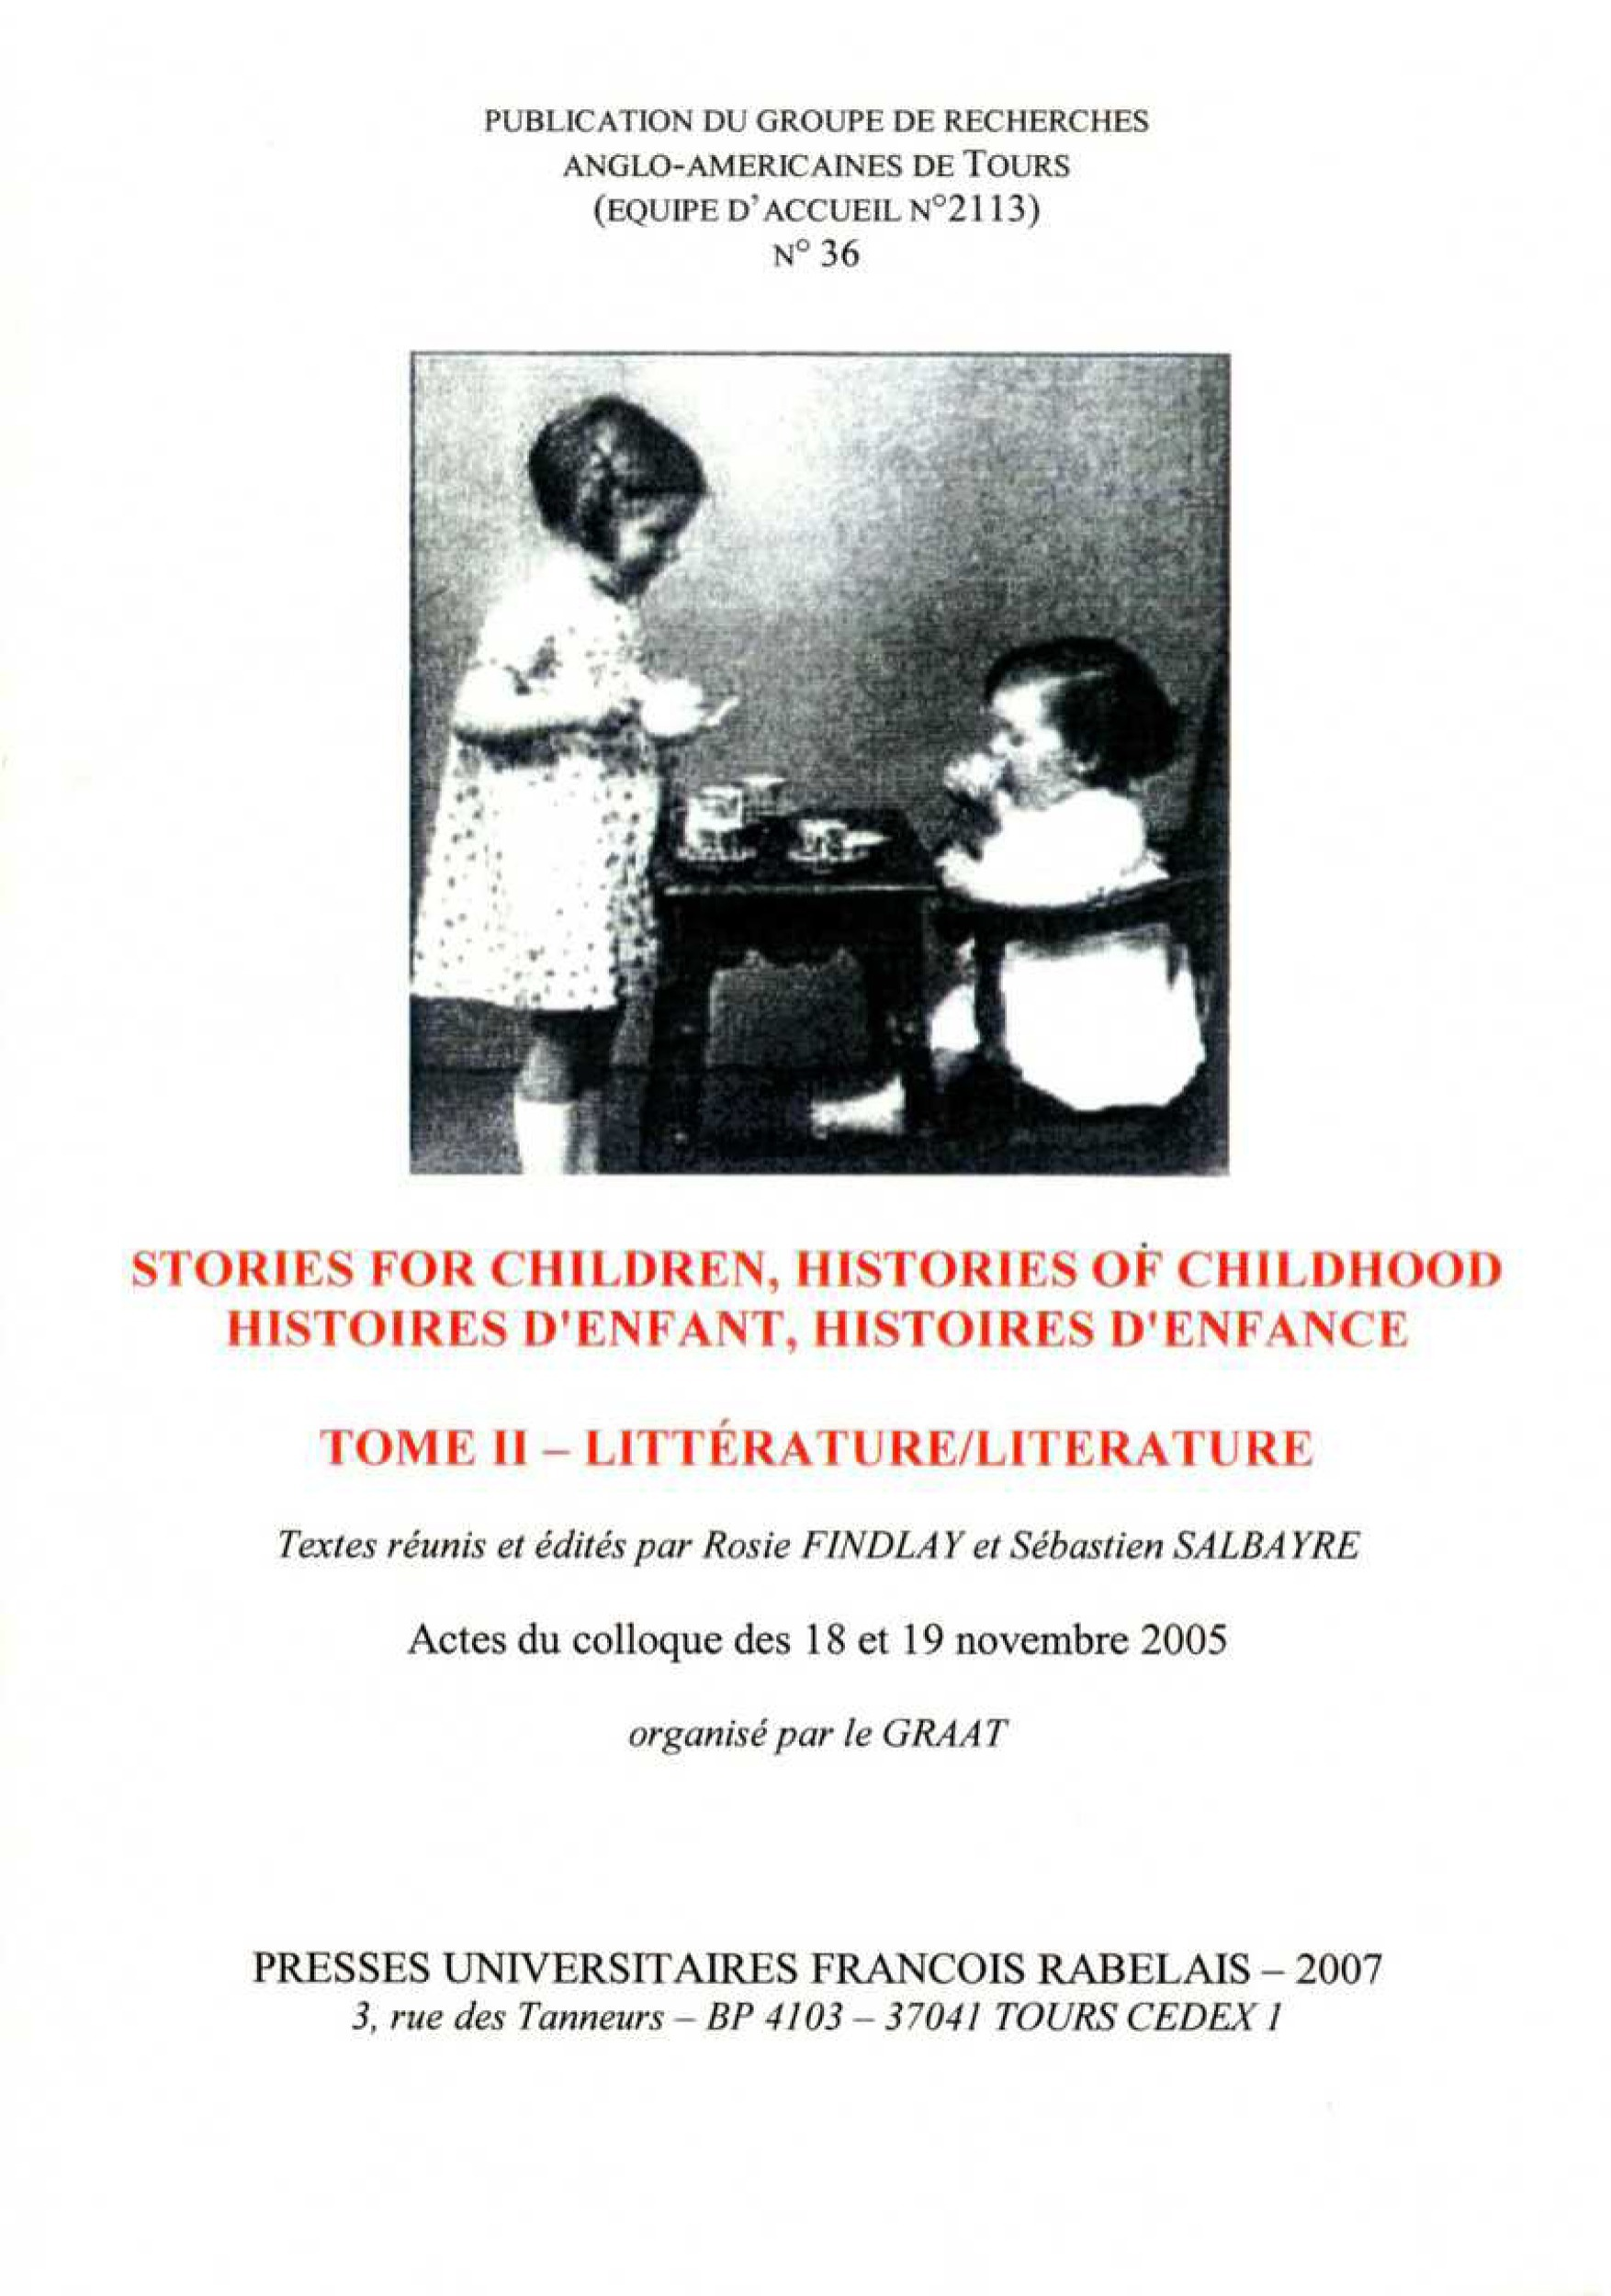 Stories for children histories of childhood / histoires d enfant histoires d enf